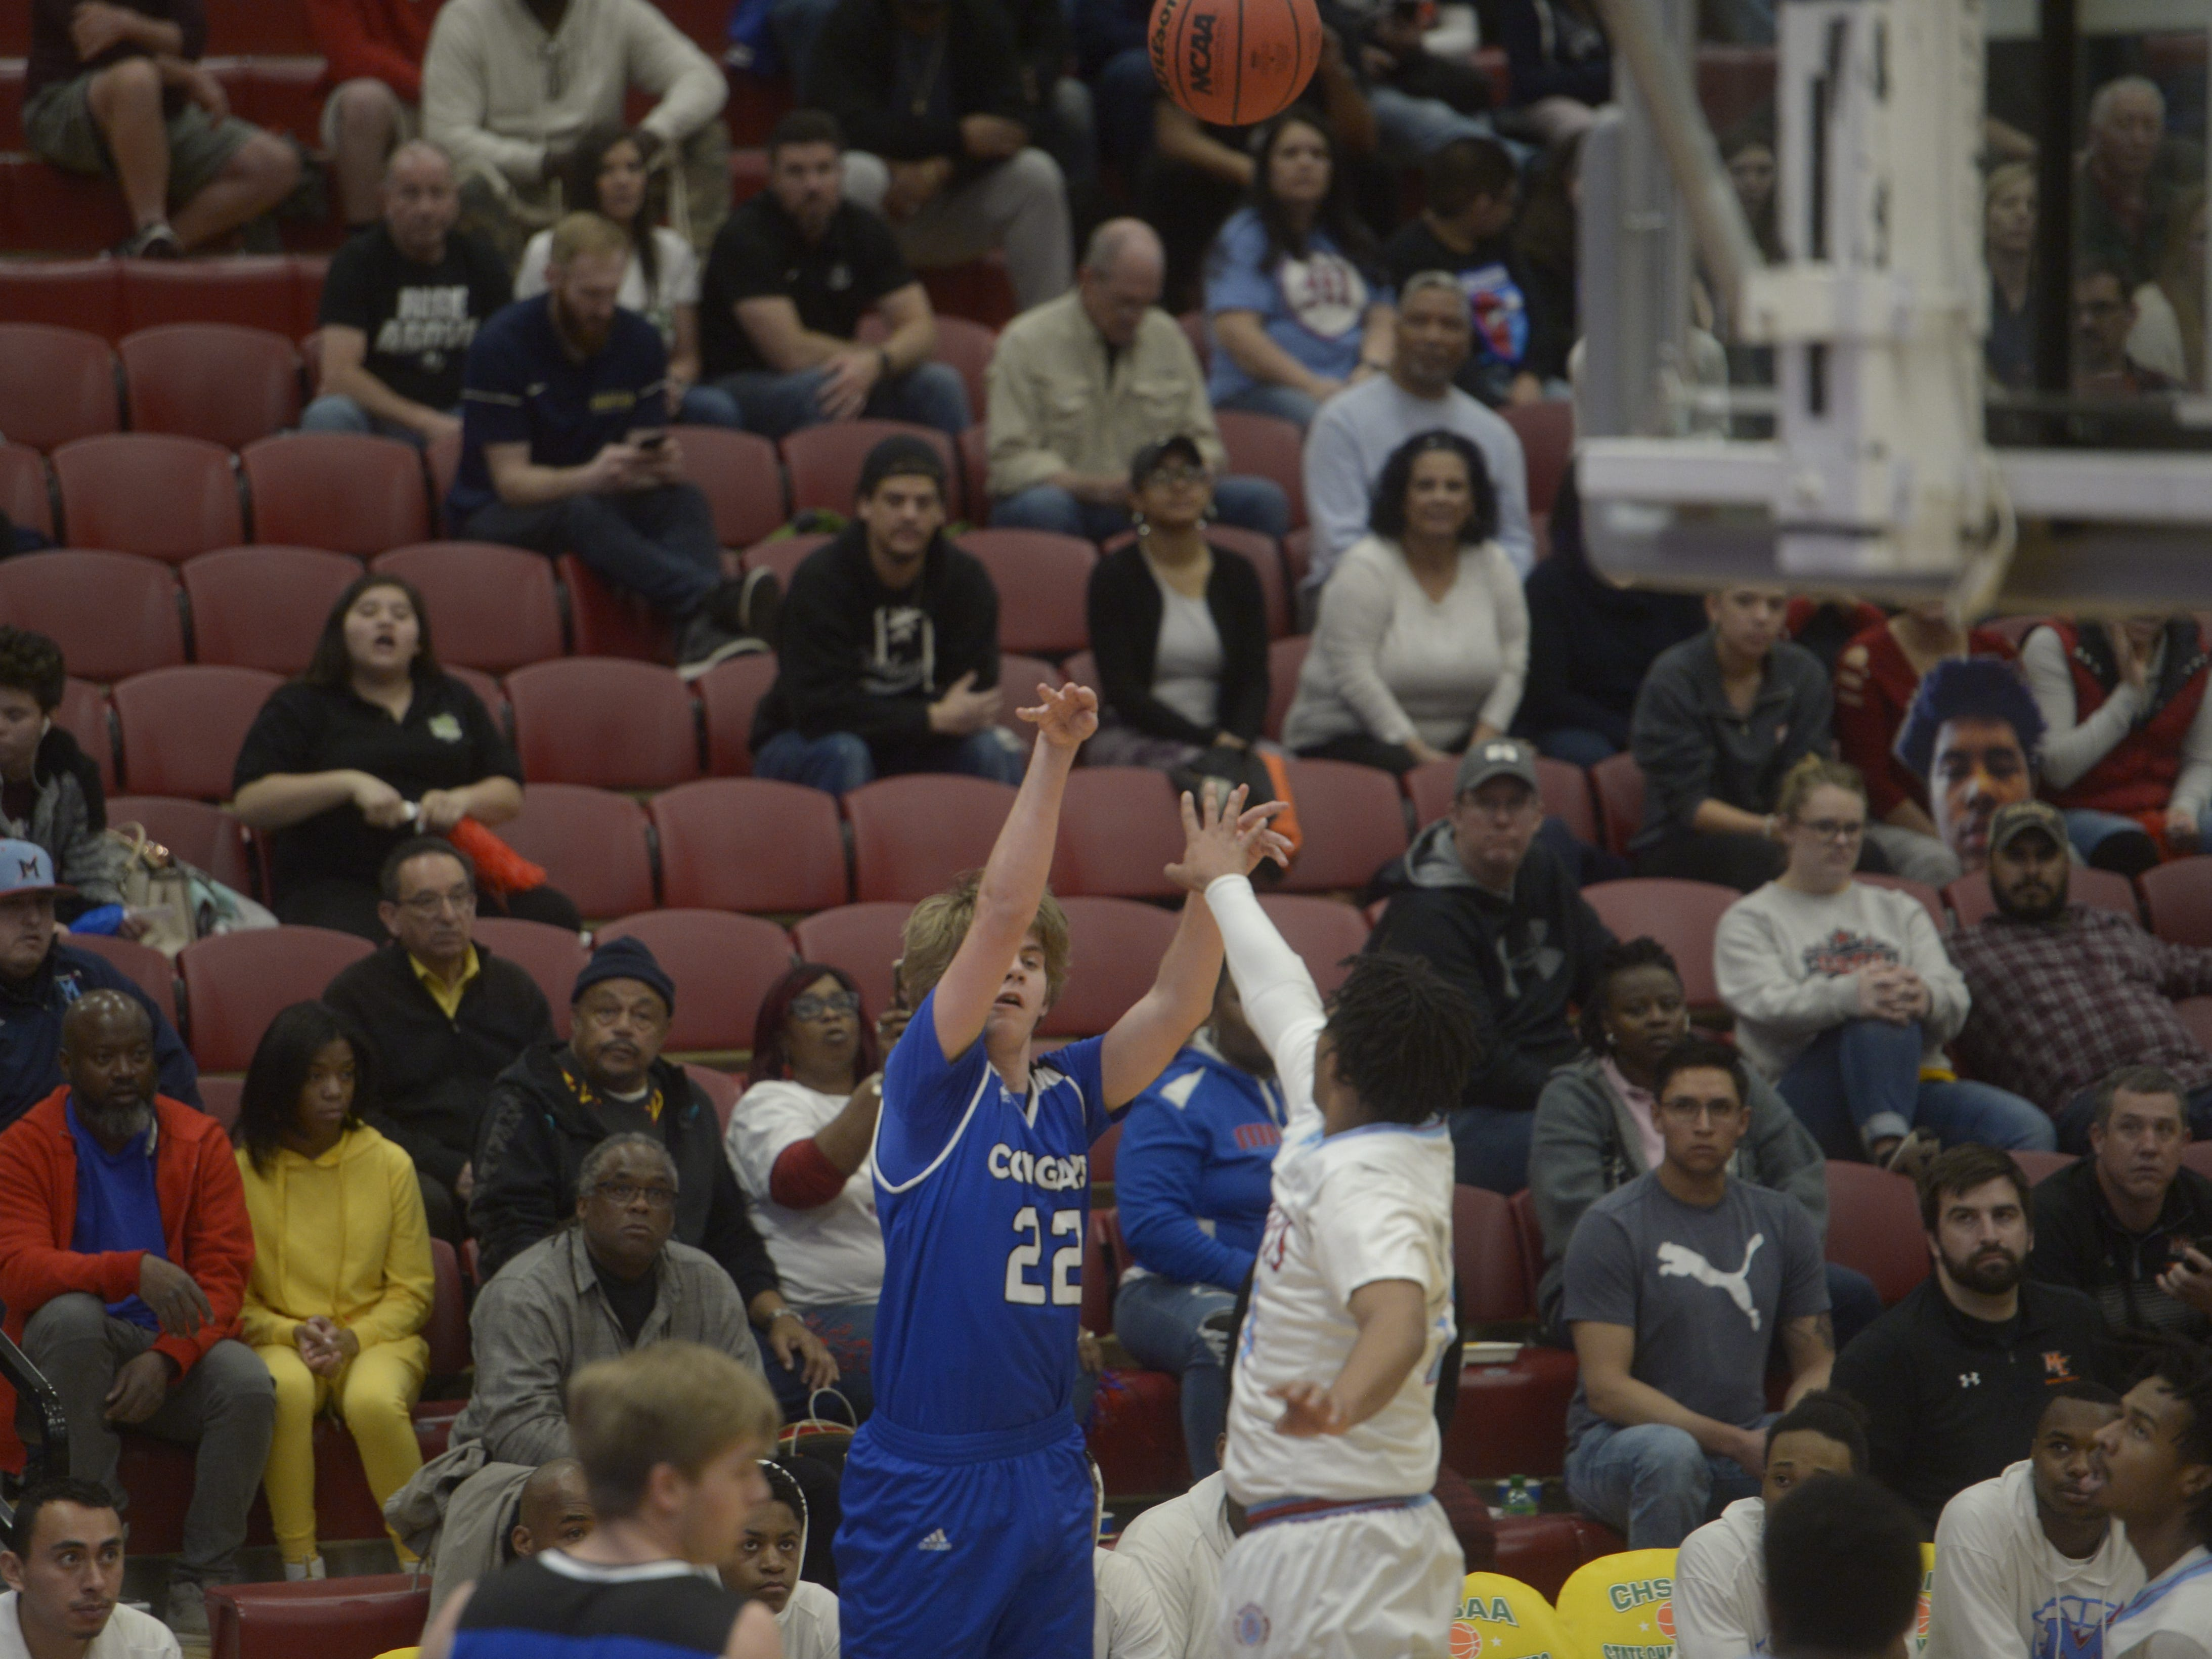 Resurrection Christian guard Sparky Morris fires a 3-pointer during a Class 3A quarterfinals game against Manual at the University of Denver on Thursday, March 7, 2019.